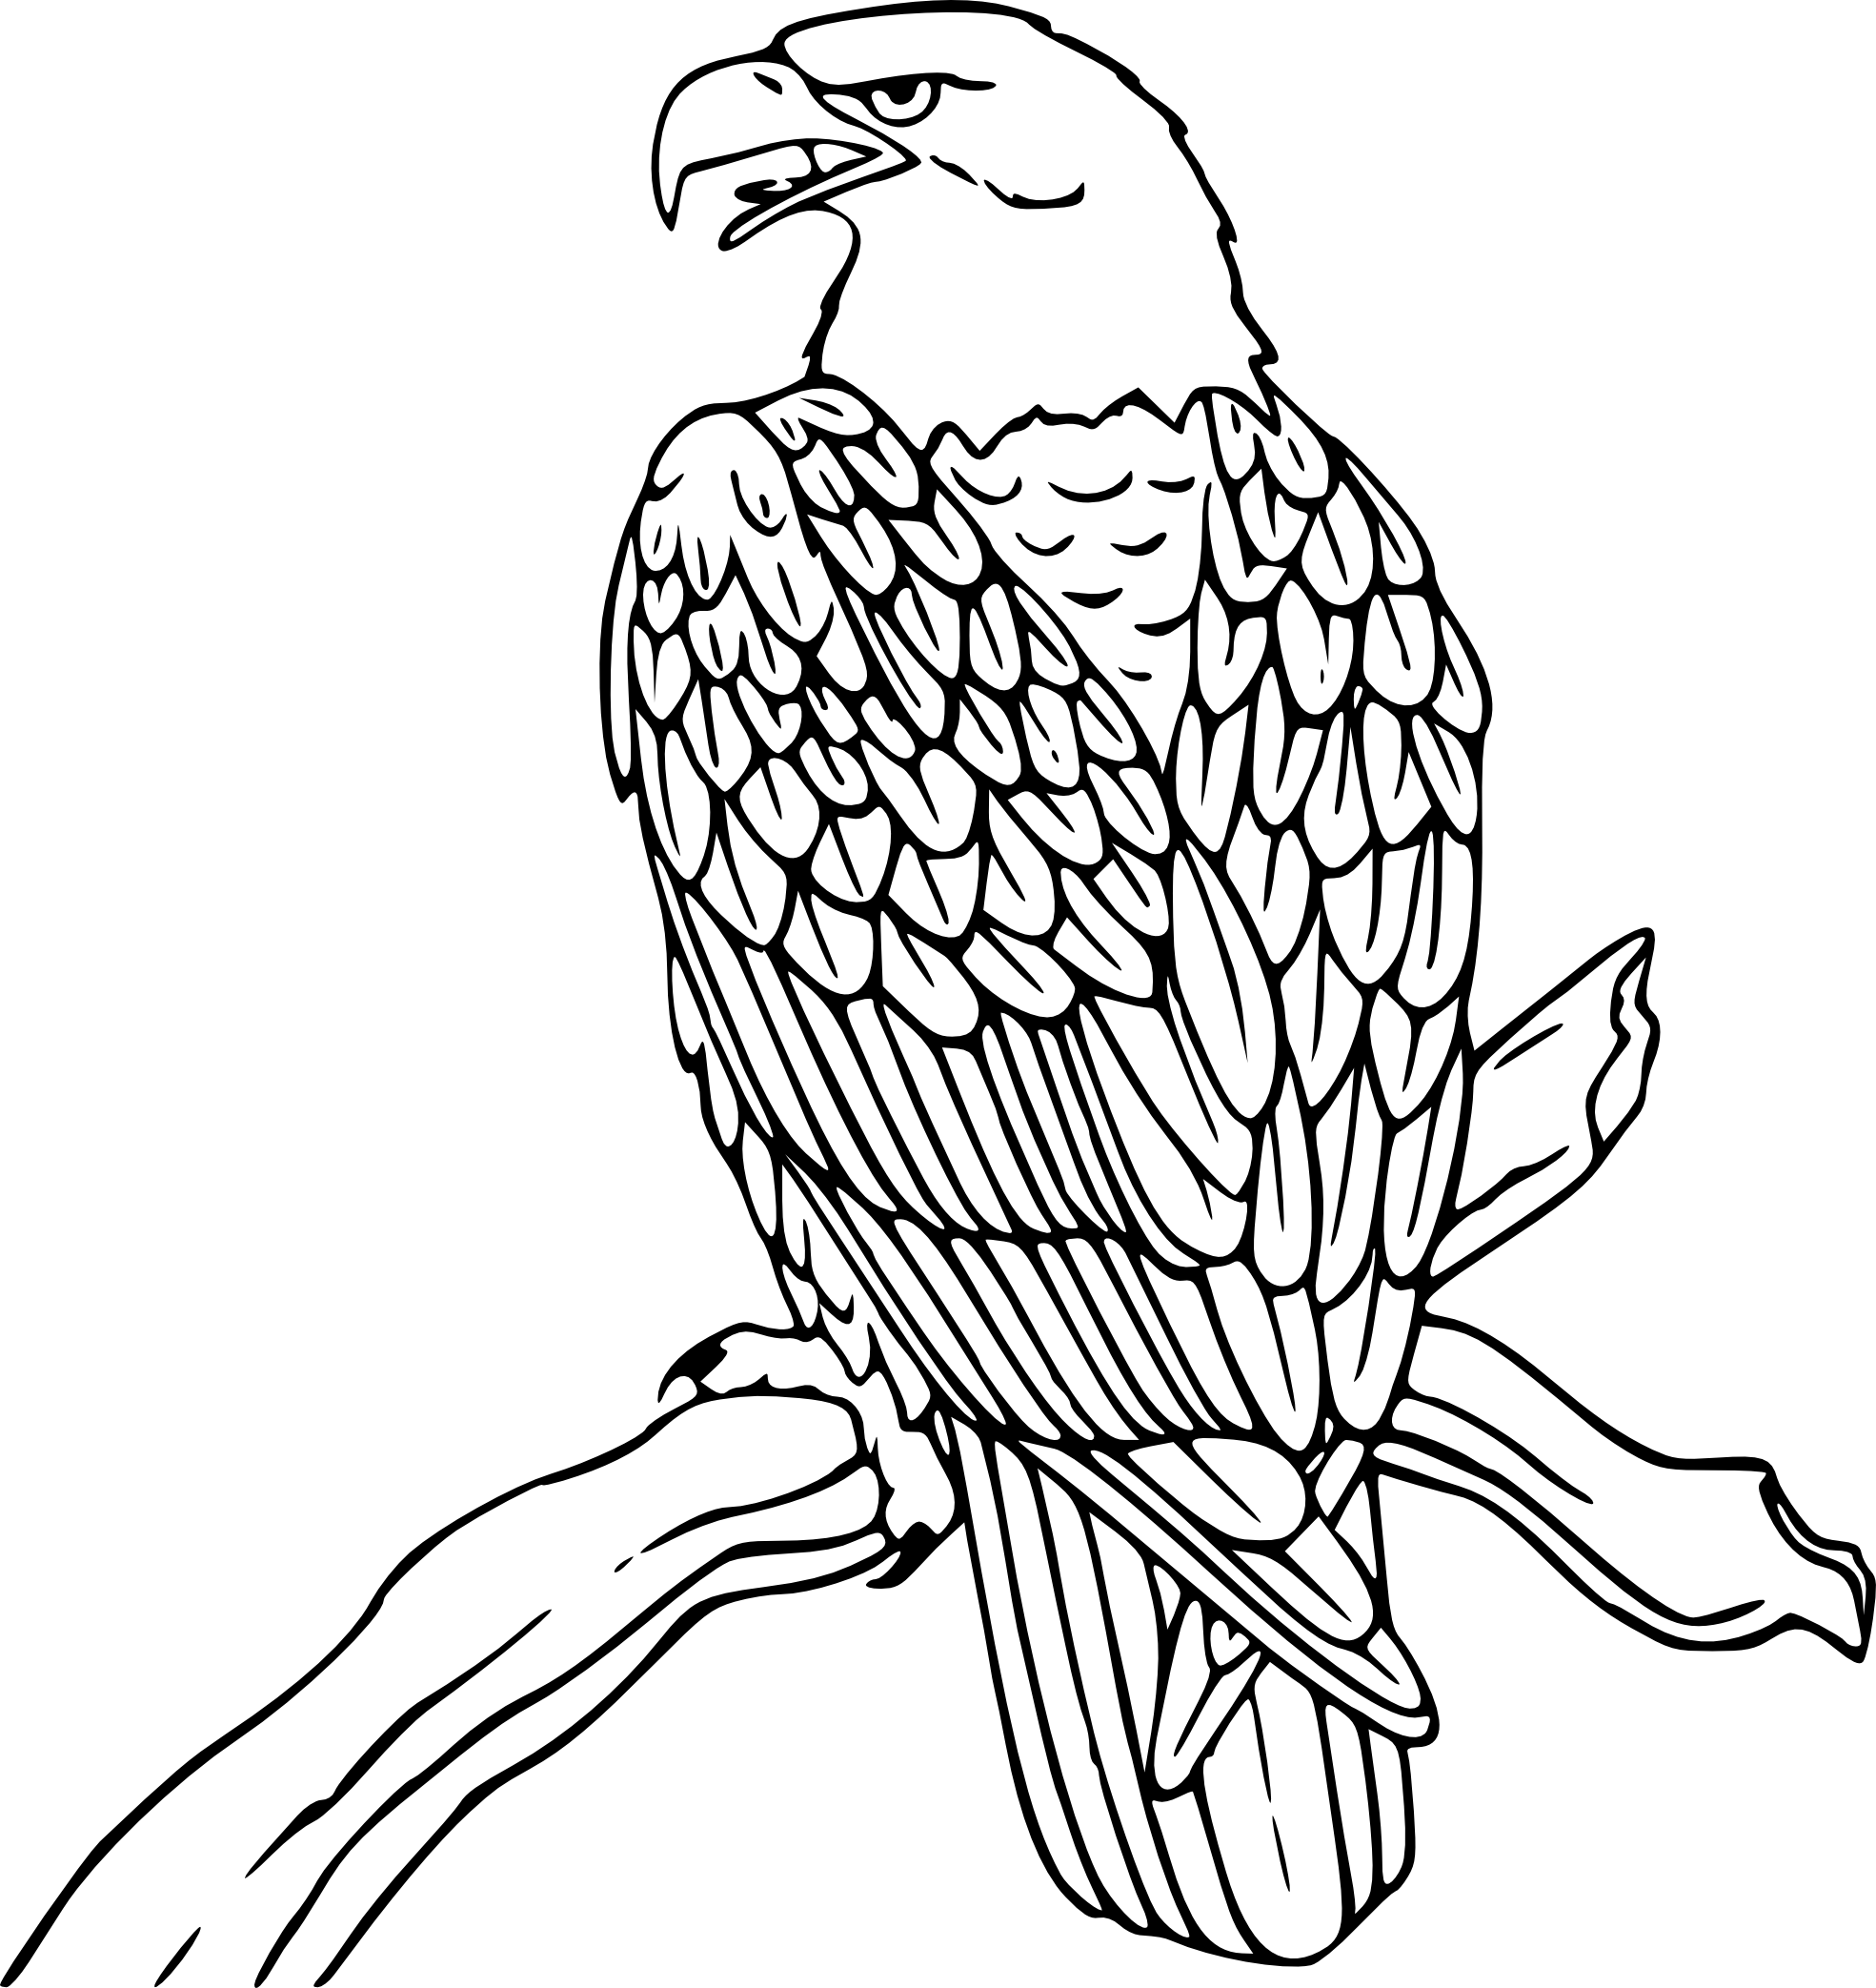 Drawing eagles ink. Cute friendly eagle clipart